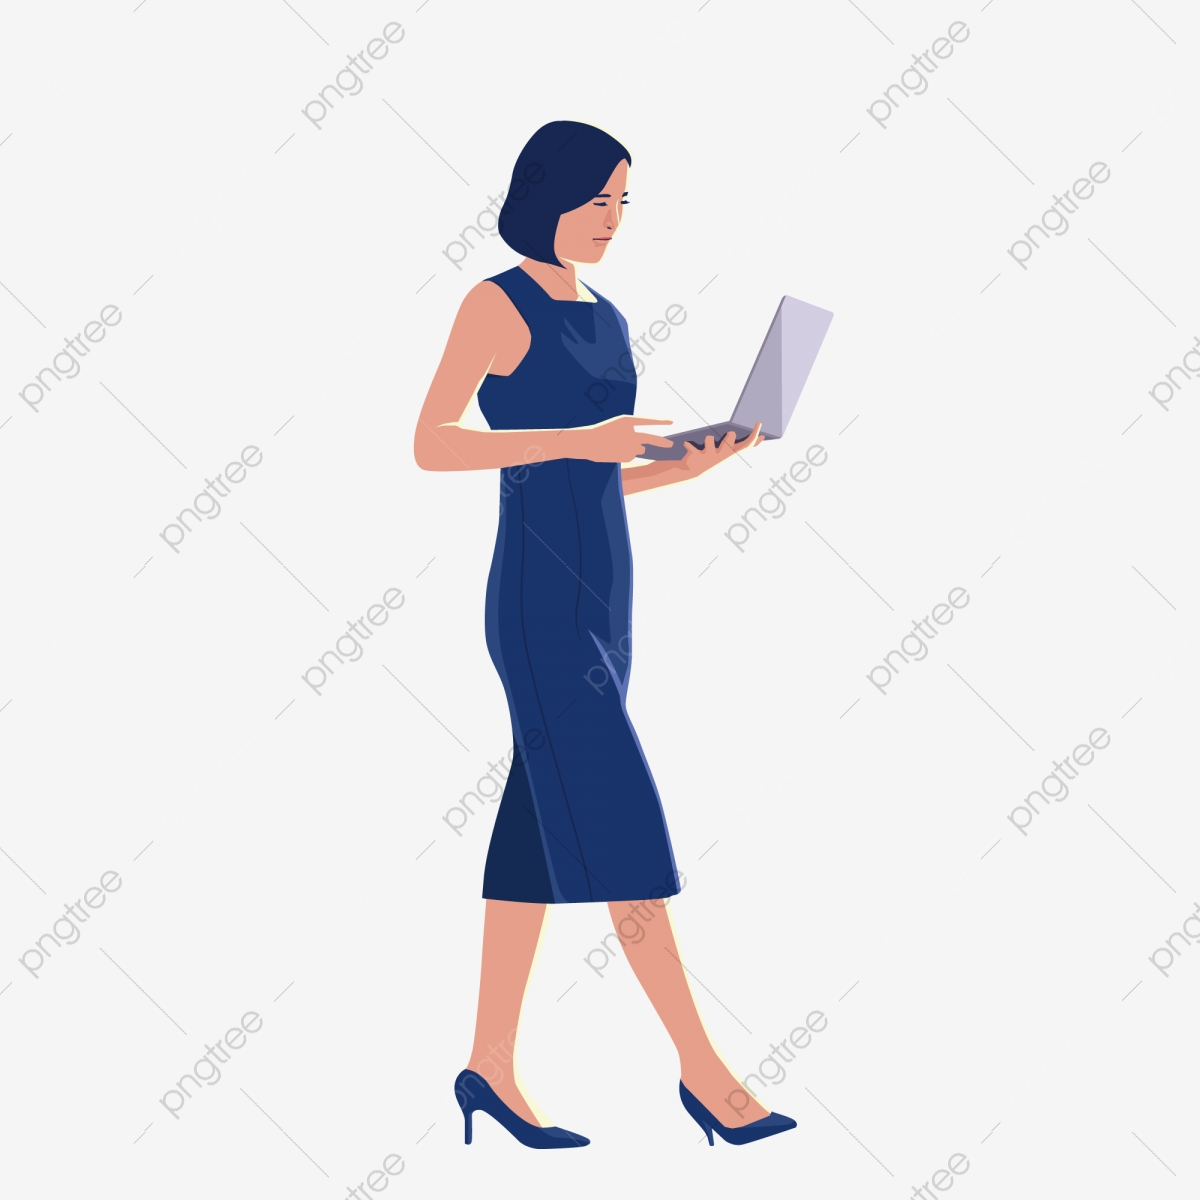 Cartoon Office Professional Woman Free Illustration Business Woman Professional Woman Free Clipart Cartoon Png And Vector With Transparent Background For Free Download